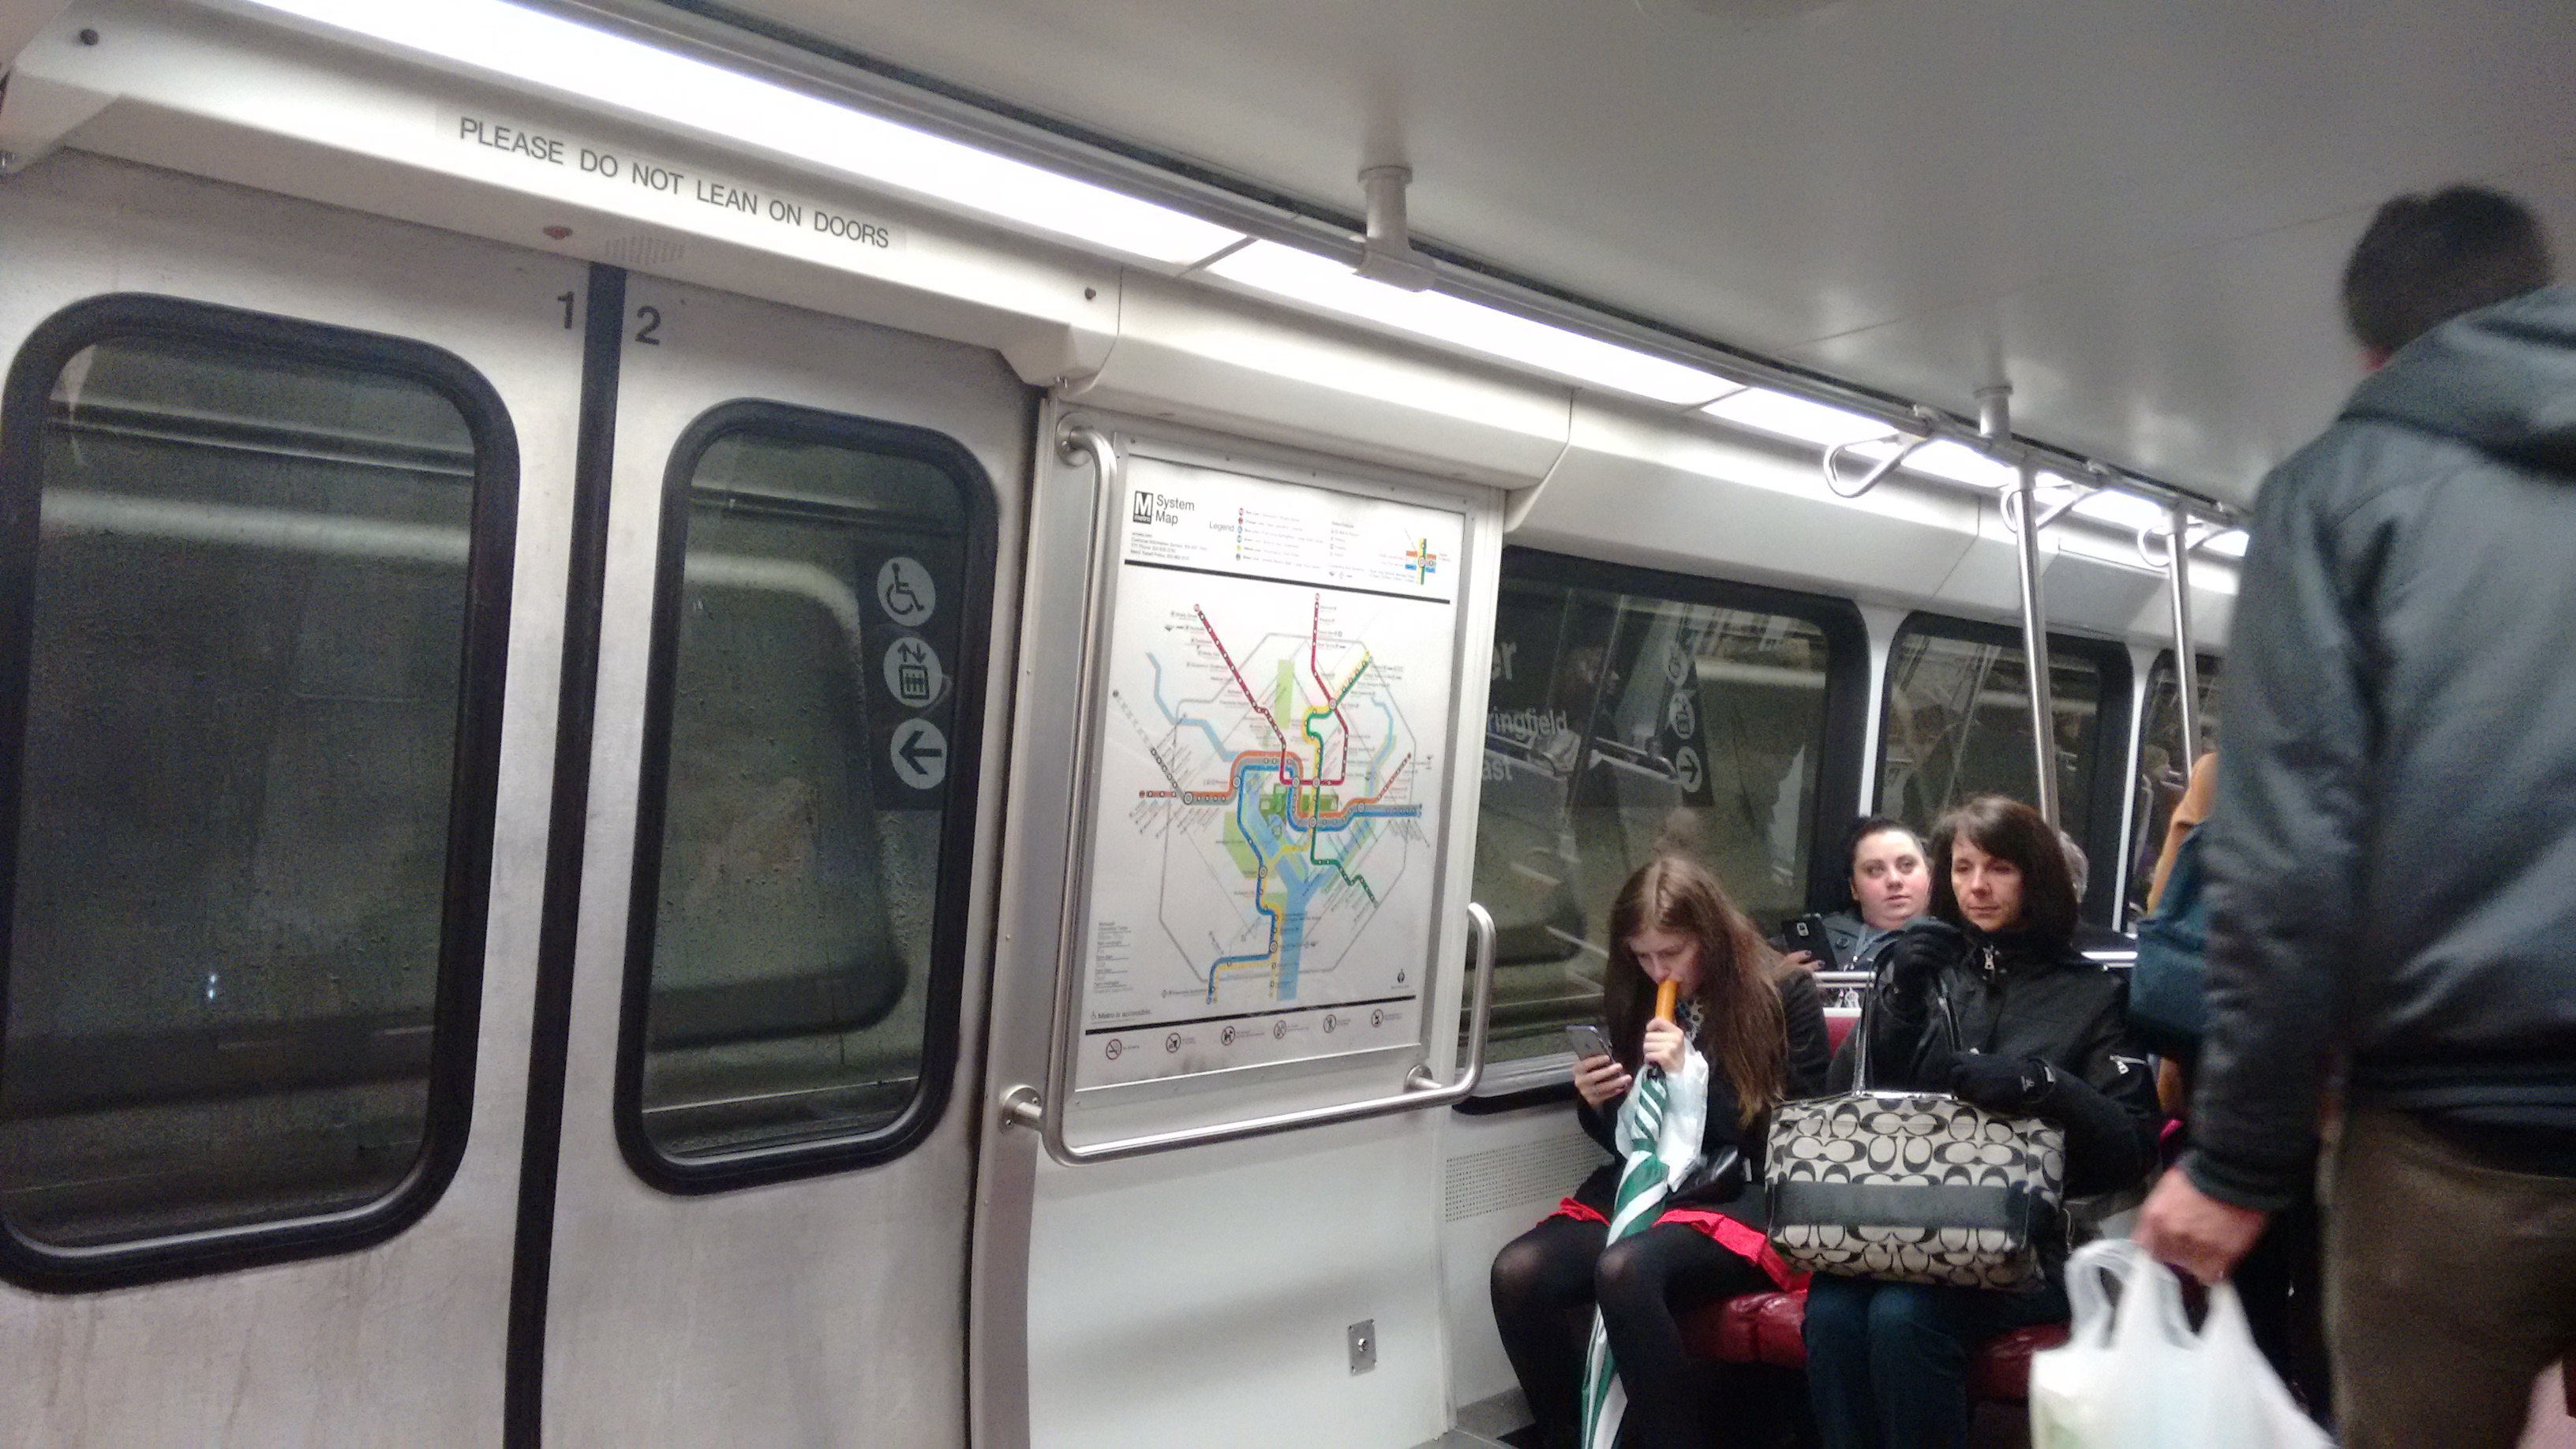 Washington Metro. Source: S. Kheraj